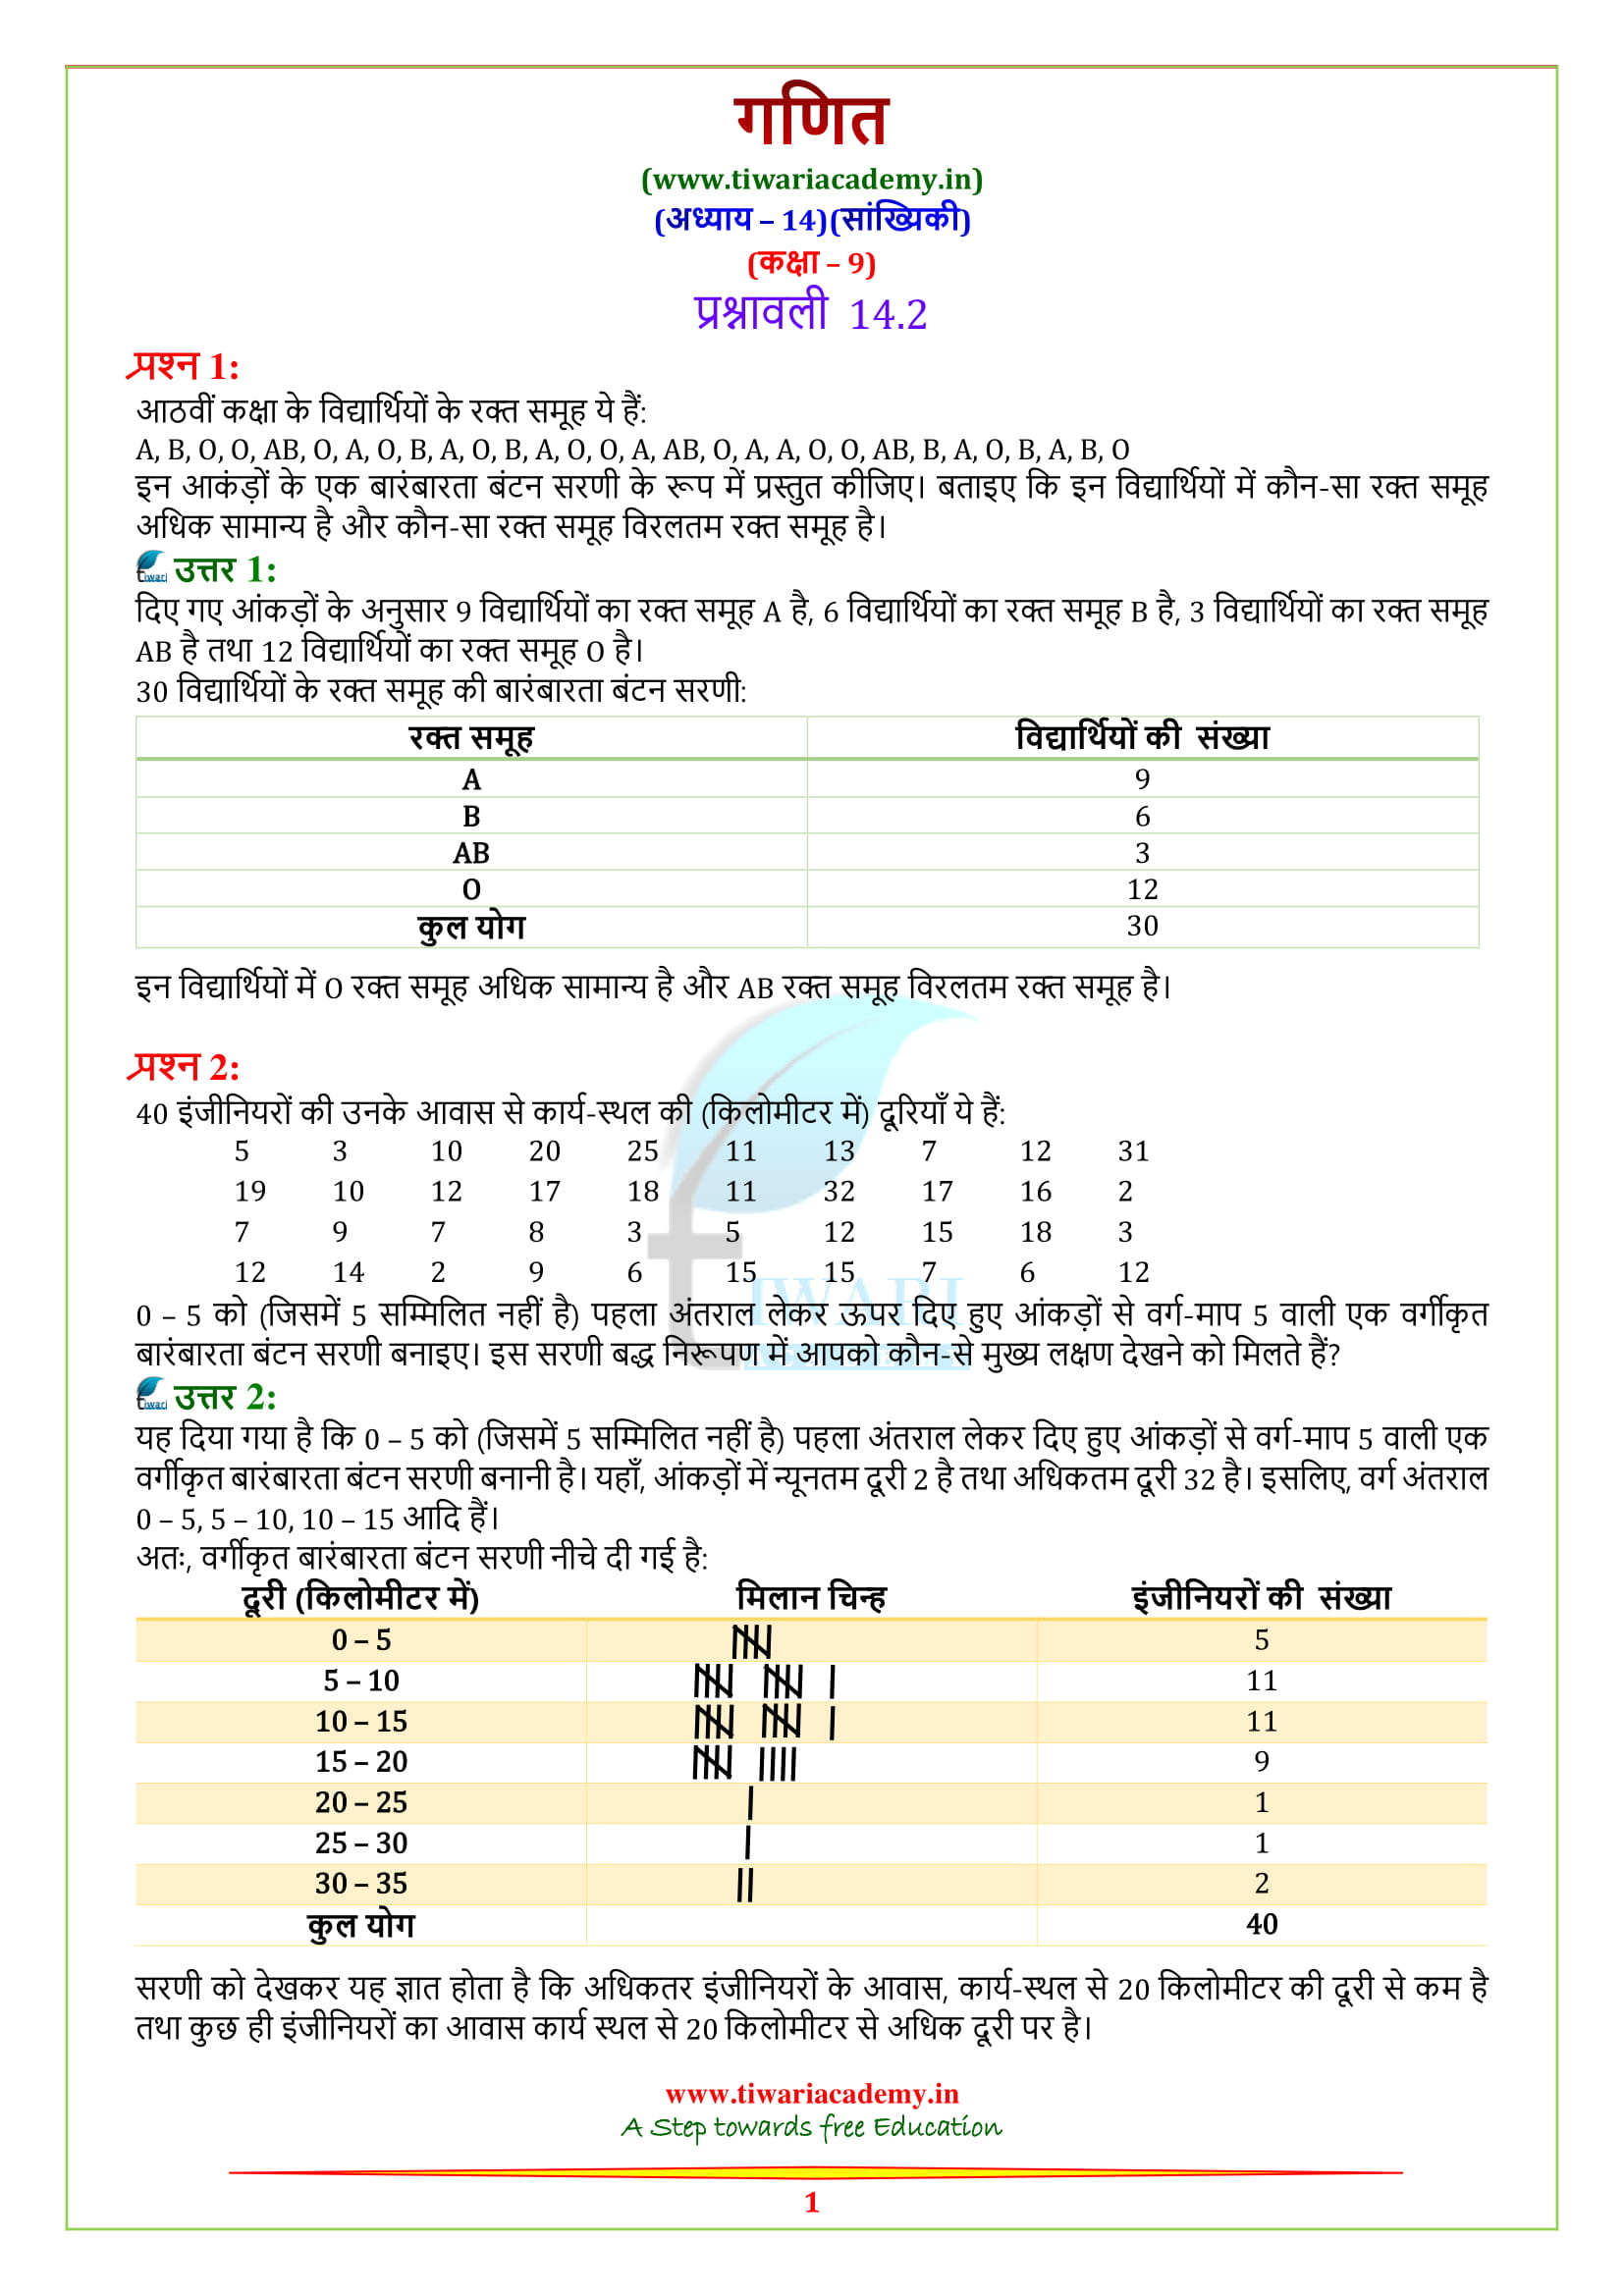 NCERT Solutions for Class 9 Maths Chapter 14 Exercise 14.2 in hindi medium